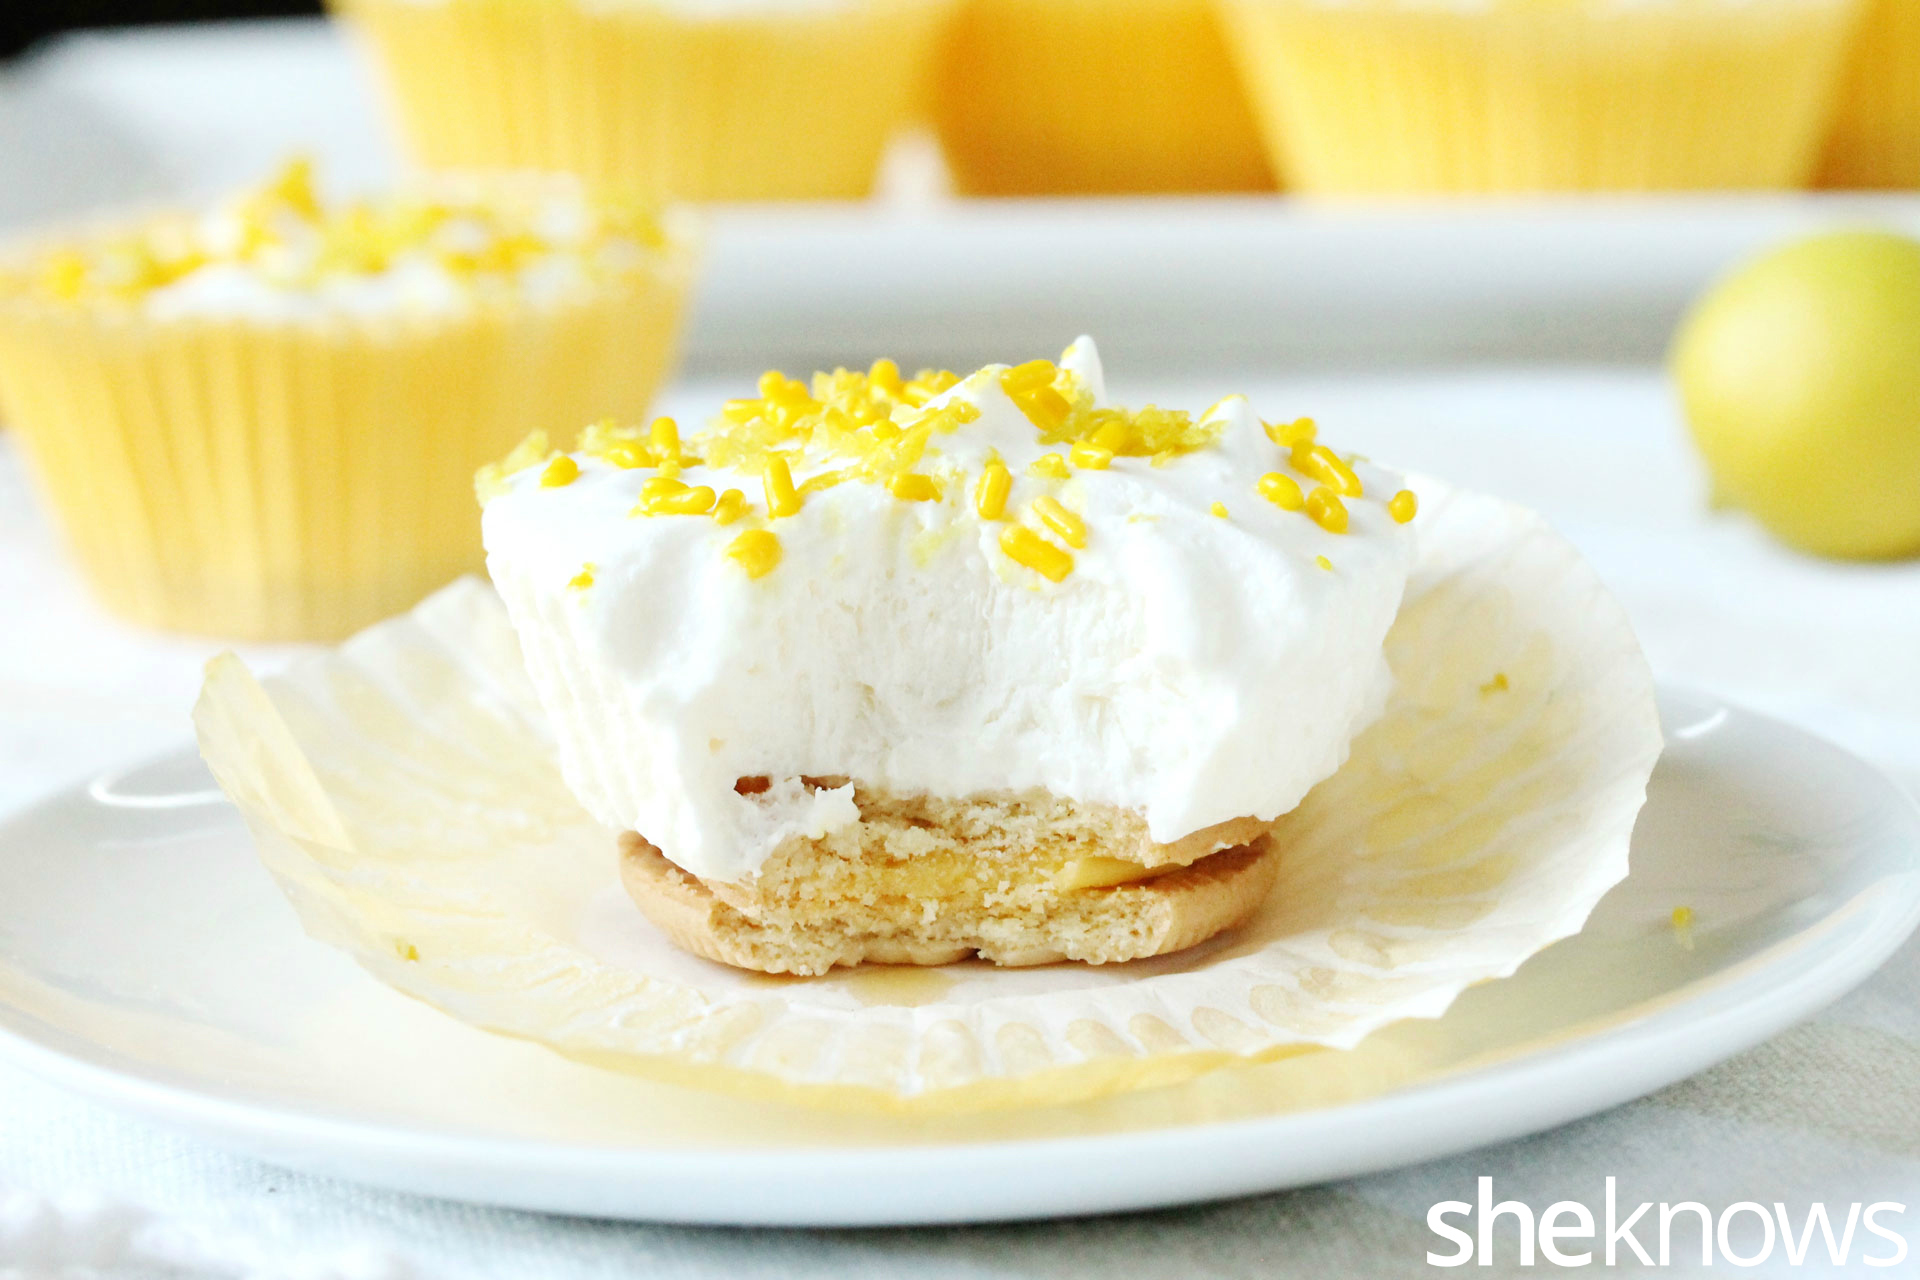 ... cheesecake cupcakes recipe by julie hasson lemon cheesecake cupcakes